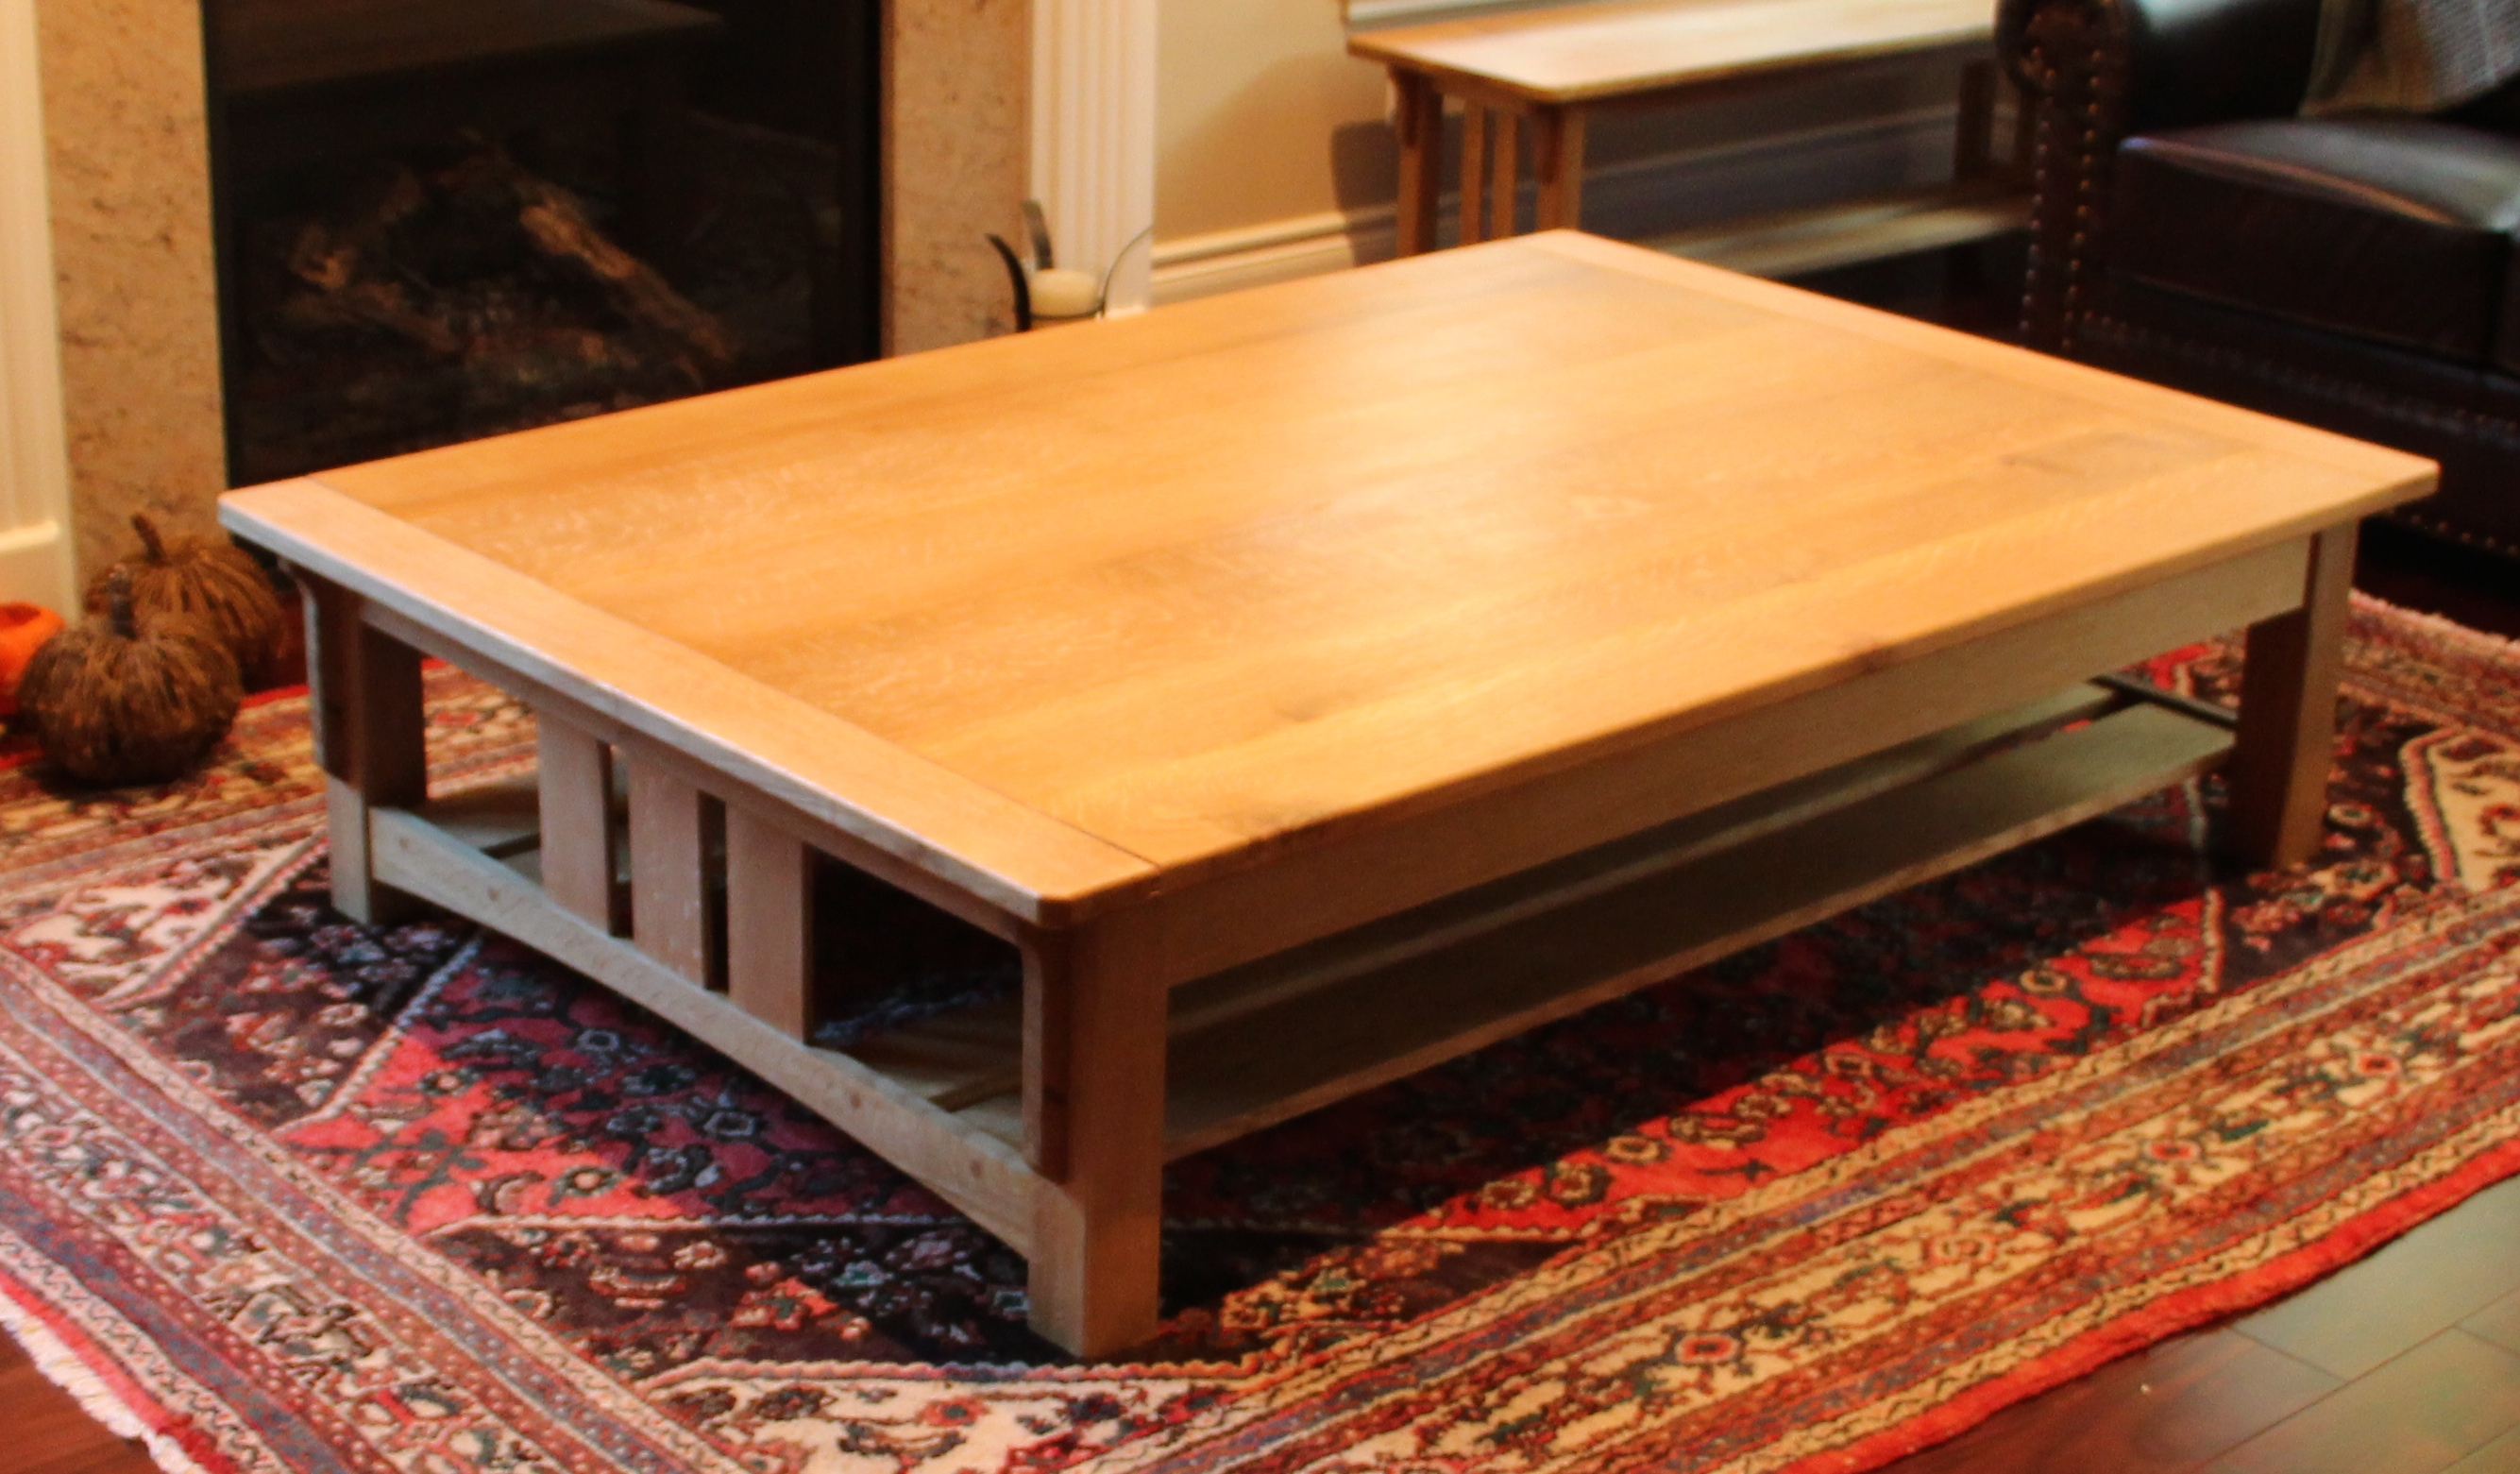 Fine furniture brian mcintosh woodworking london on for Coffee tables london ontario